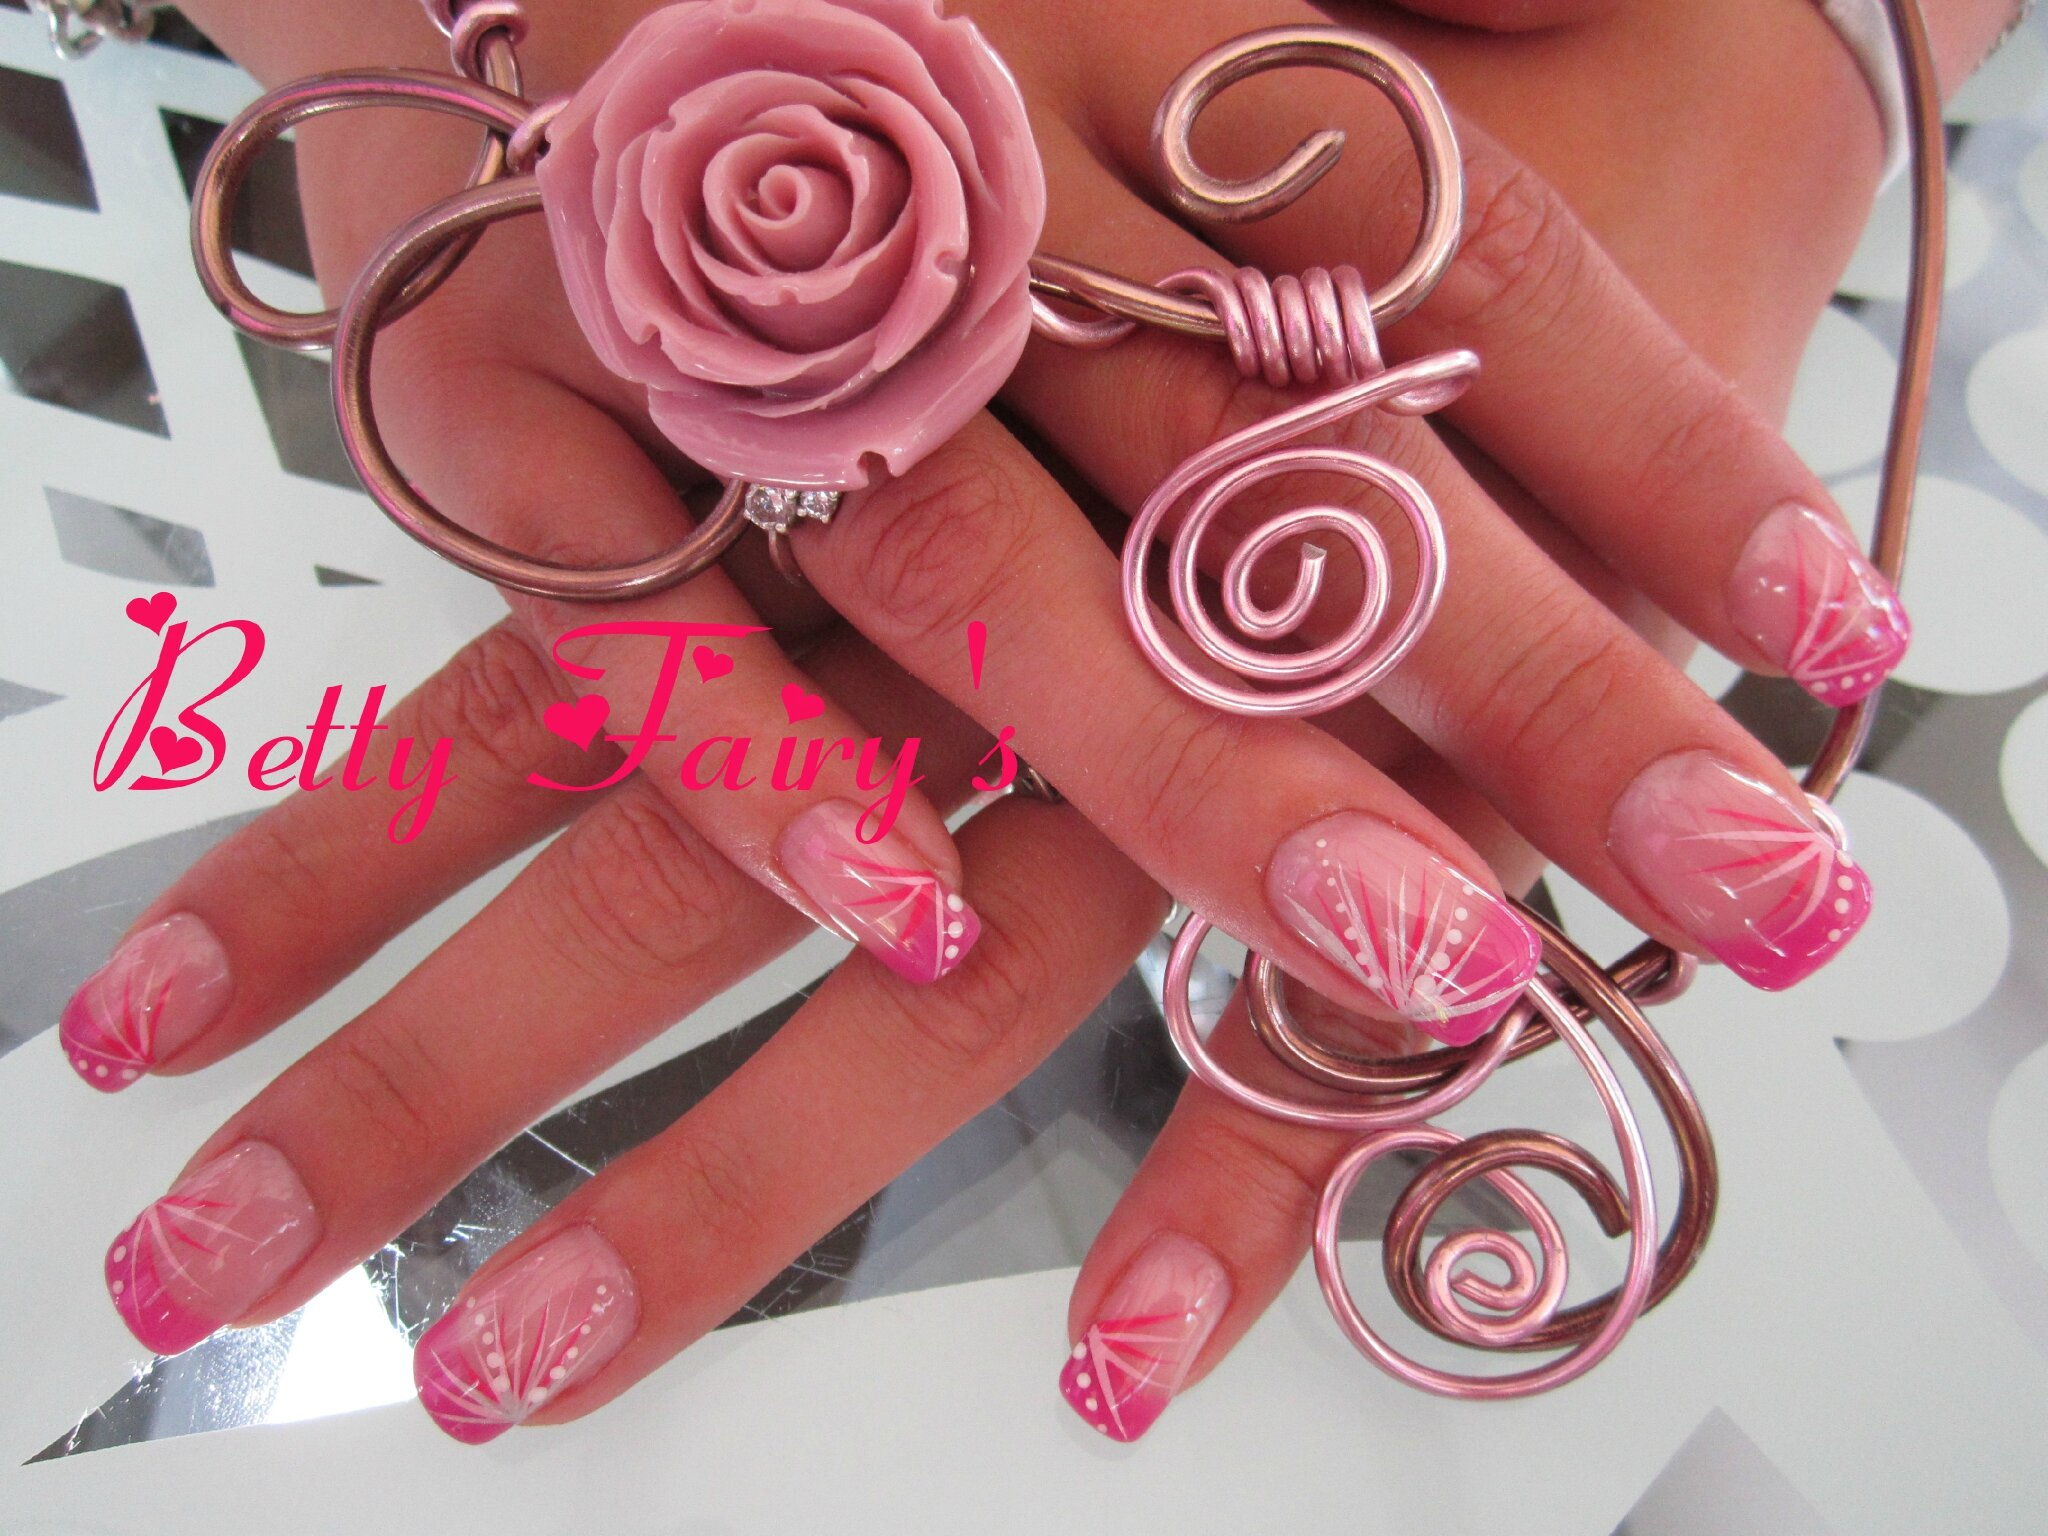 French thermo gel anthracite,rose, gel mask, feux dartifice framboise, rose pastel, argent et point blanc.